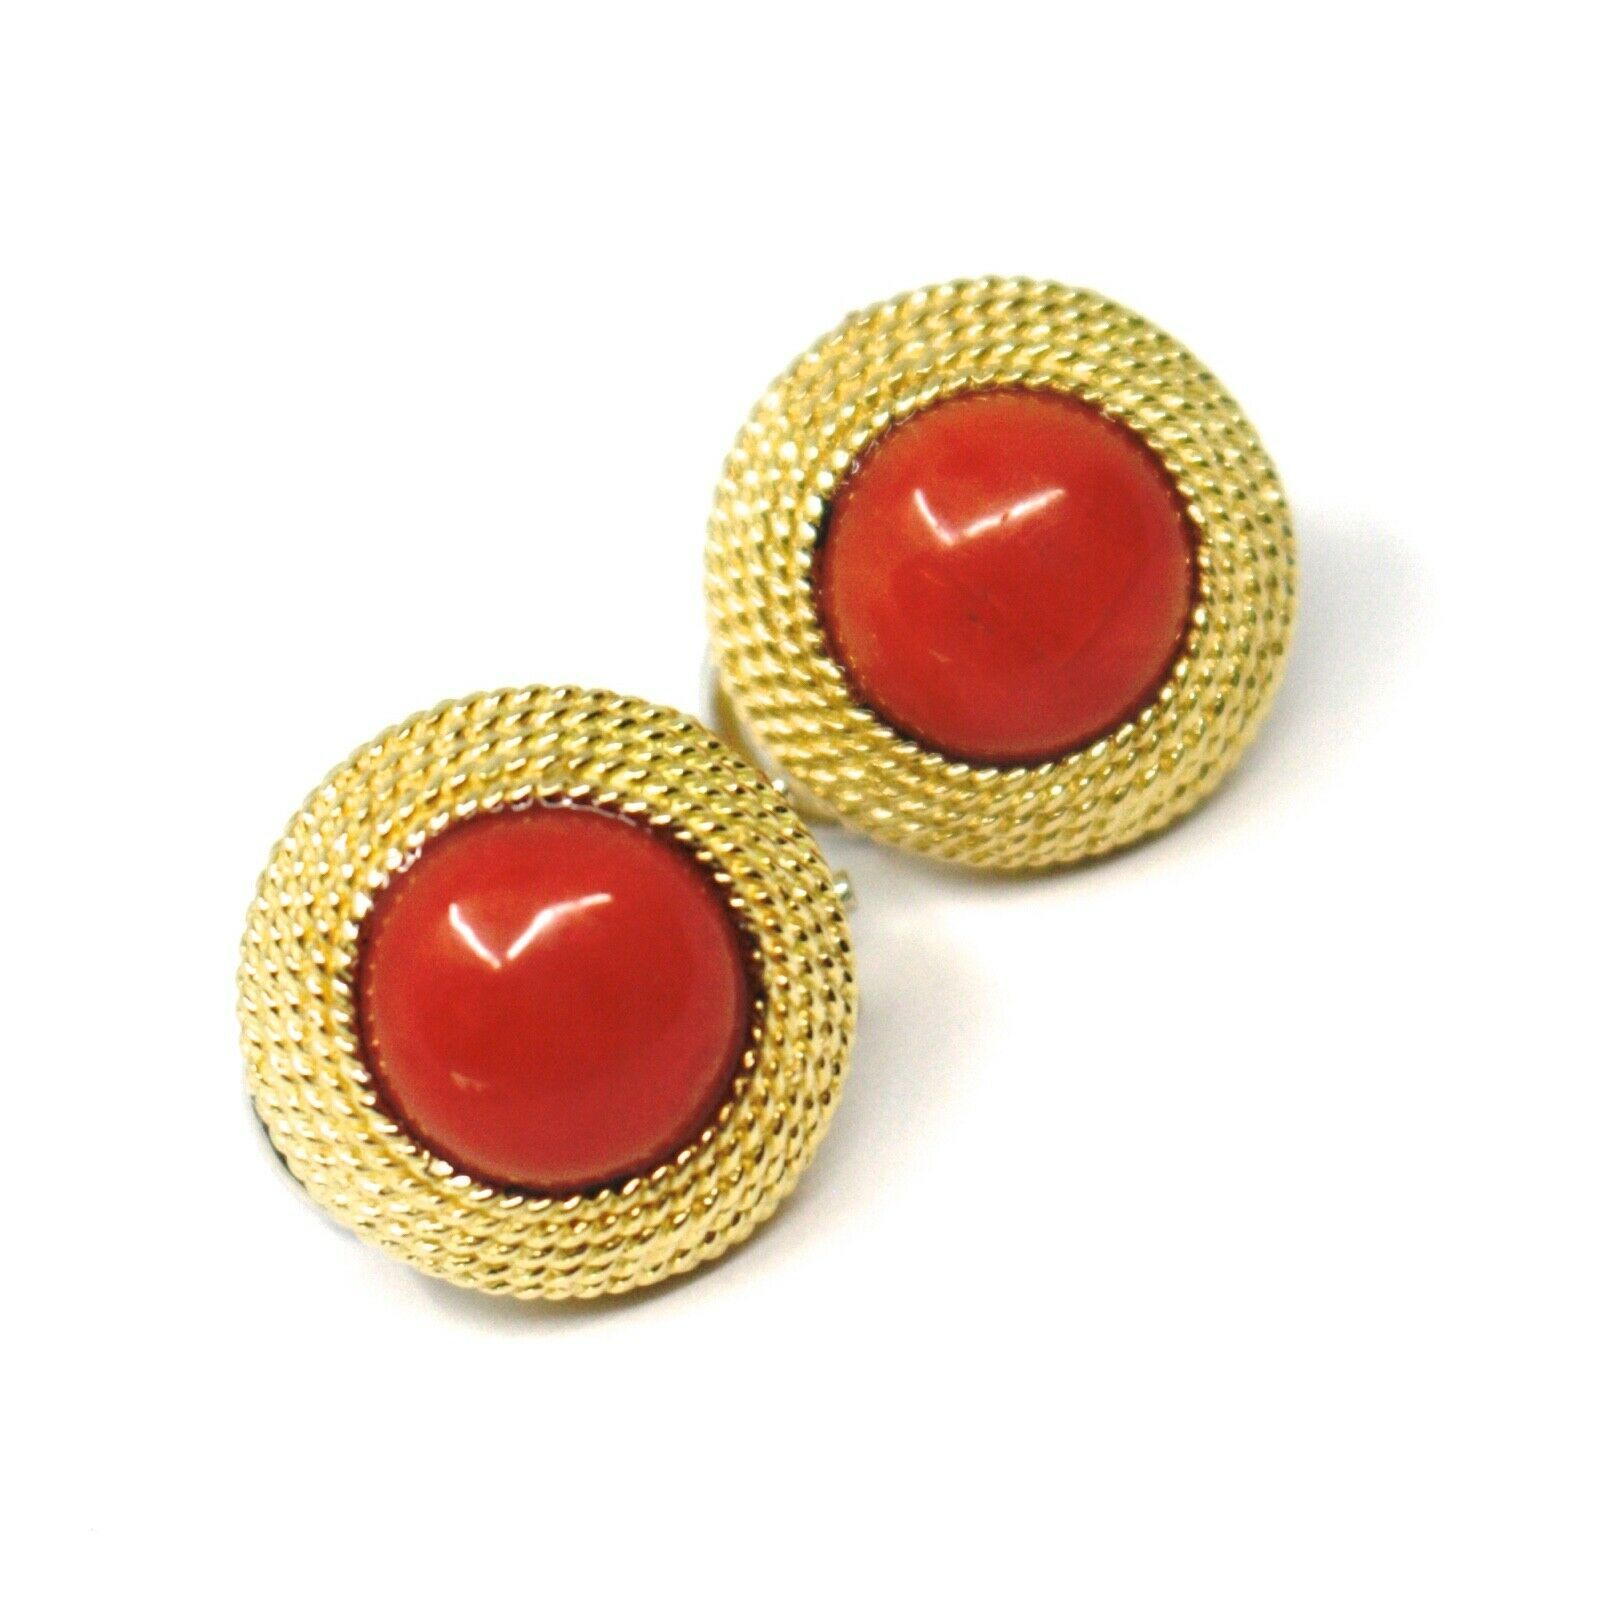 18K YELLOW GOLD BUTTON EARRINGS CABOCHON ROUND RED CORAL WORKED MULTI WIRE FRAME